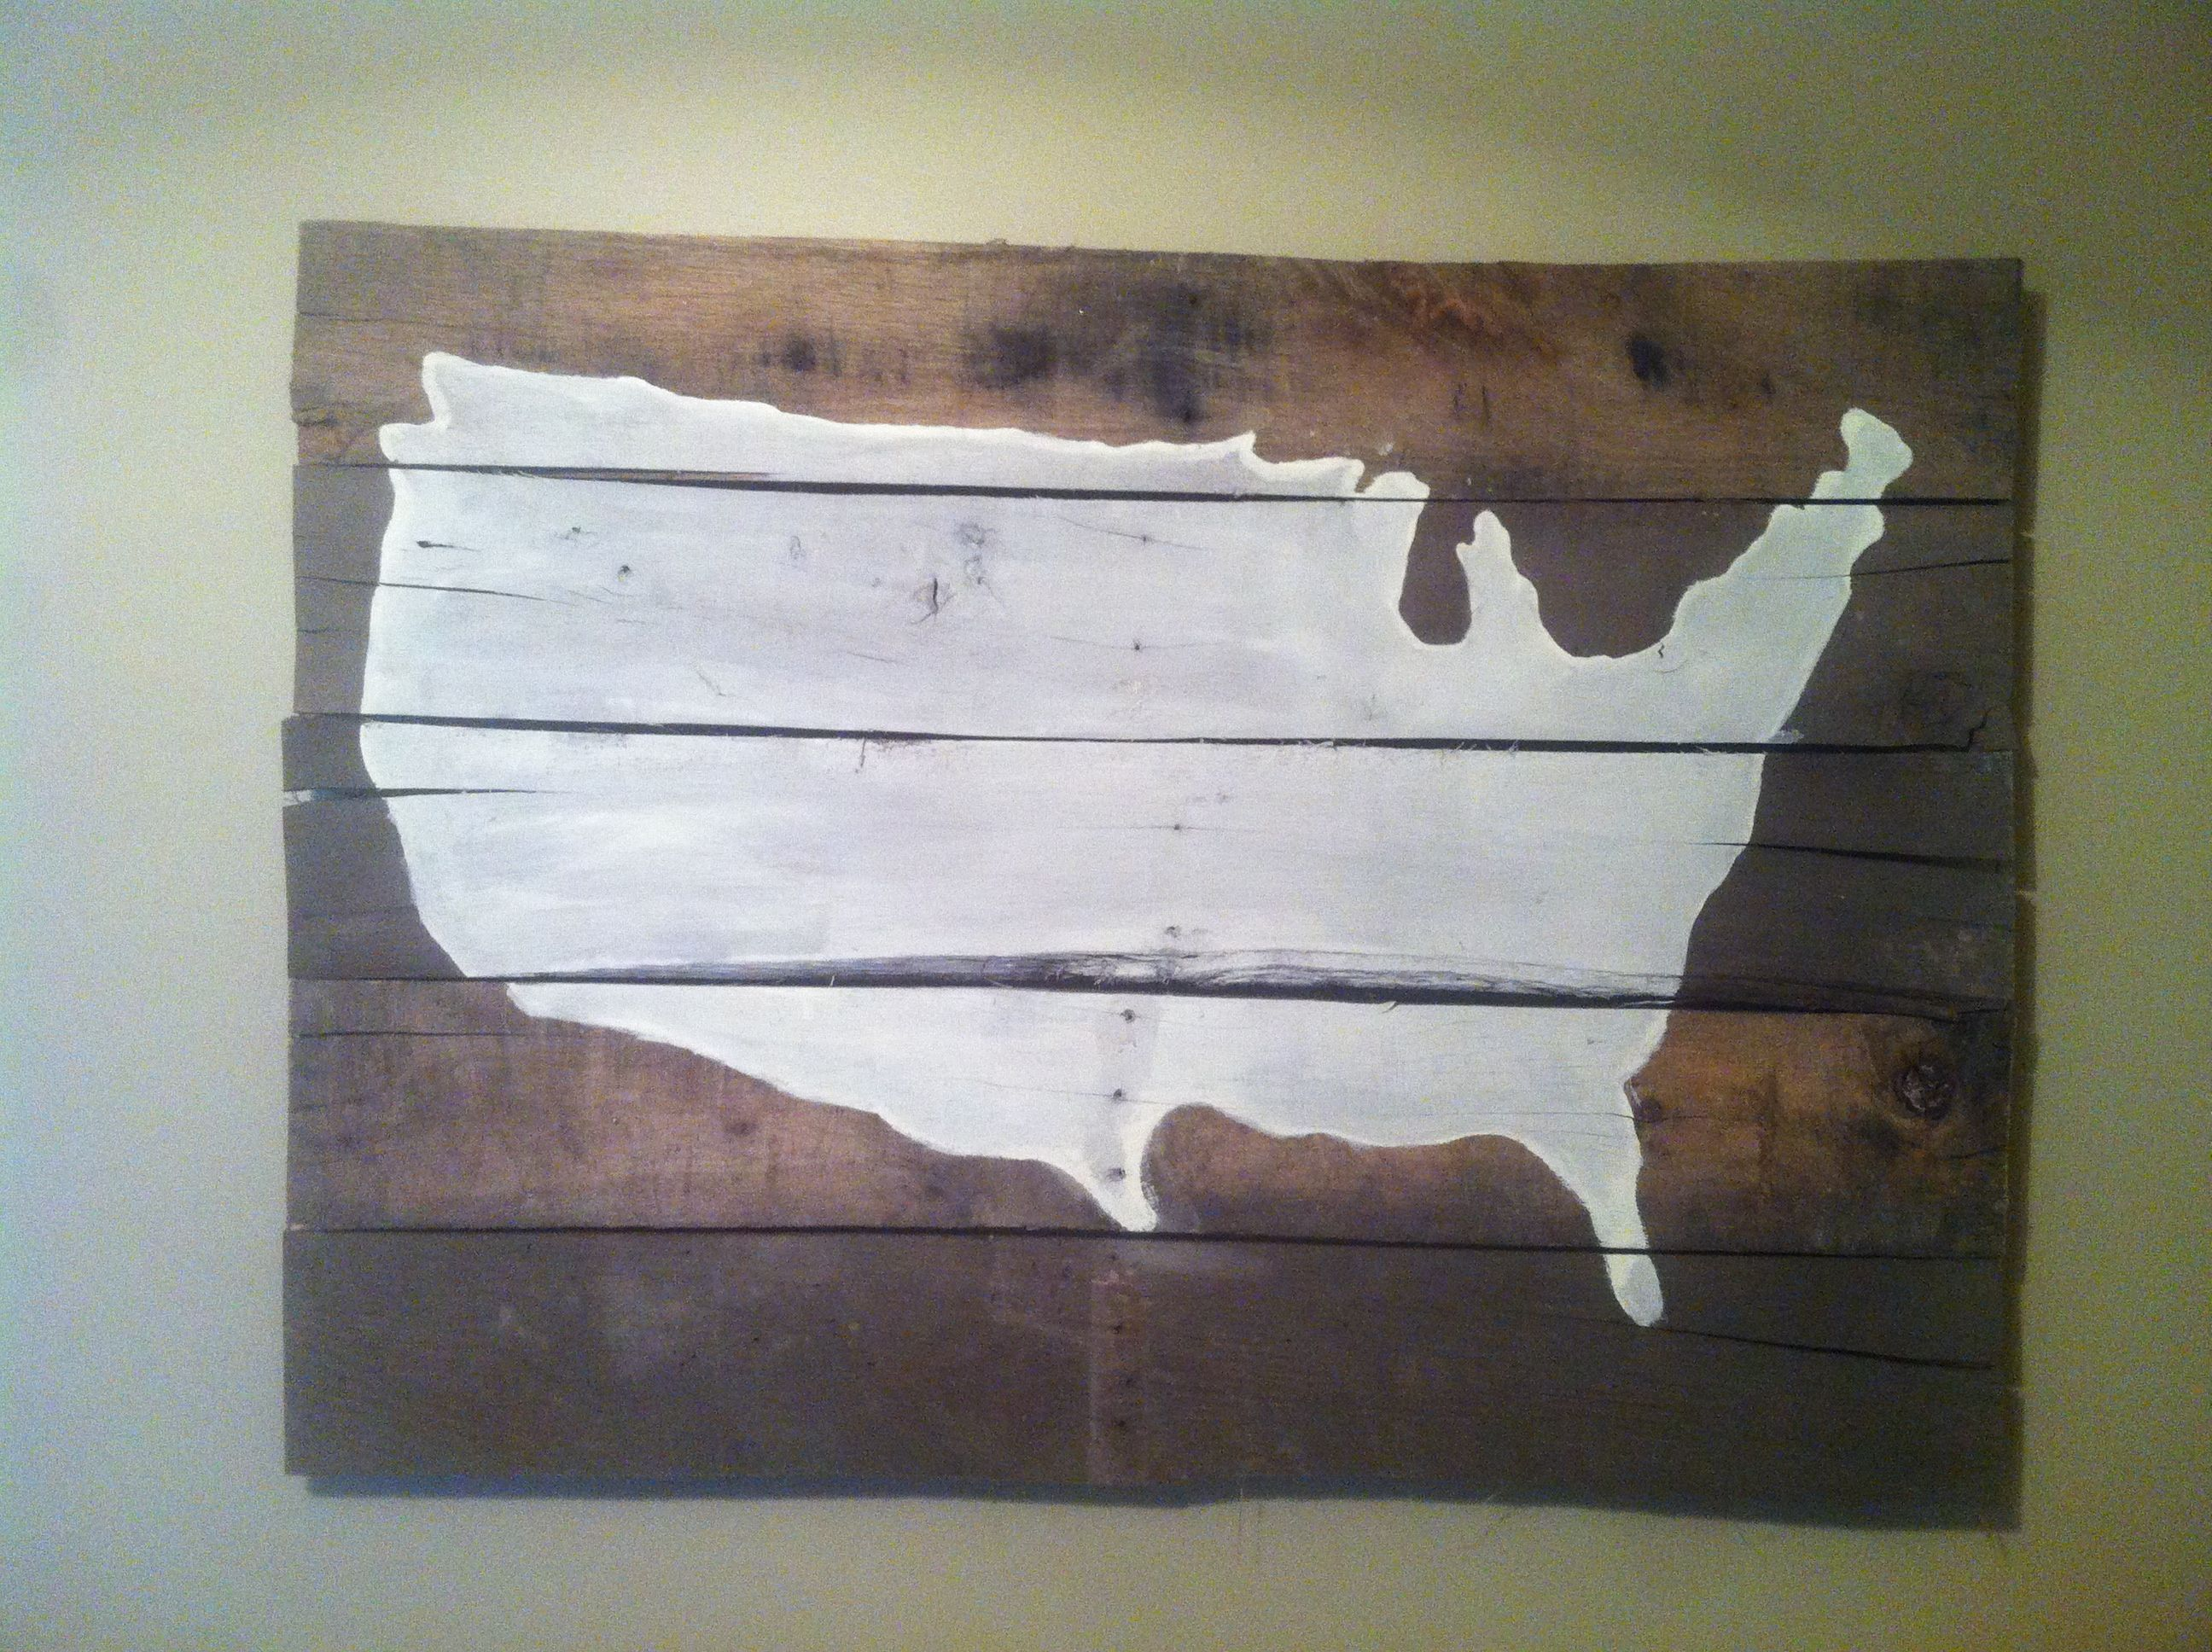 United States u.s. pallet project for boys eclectic room!!!